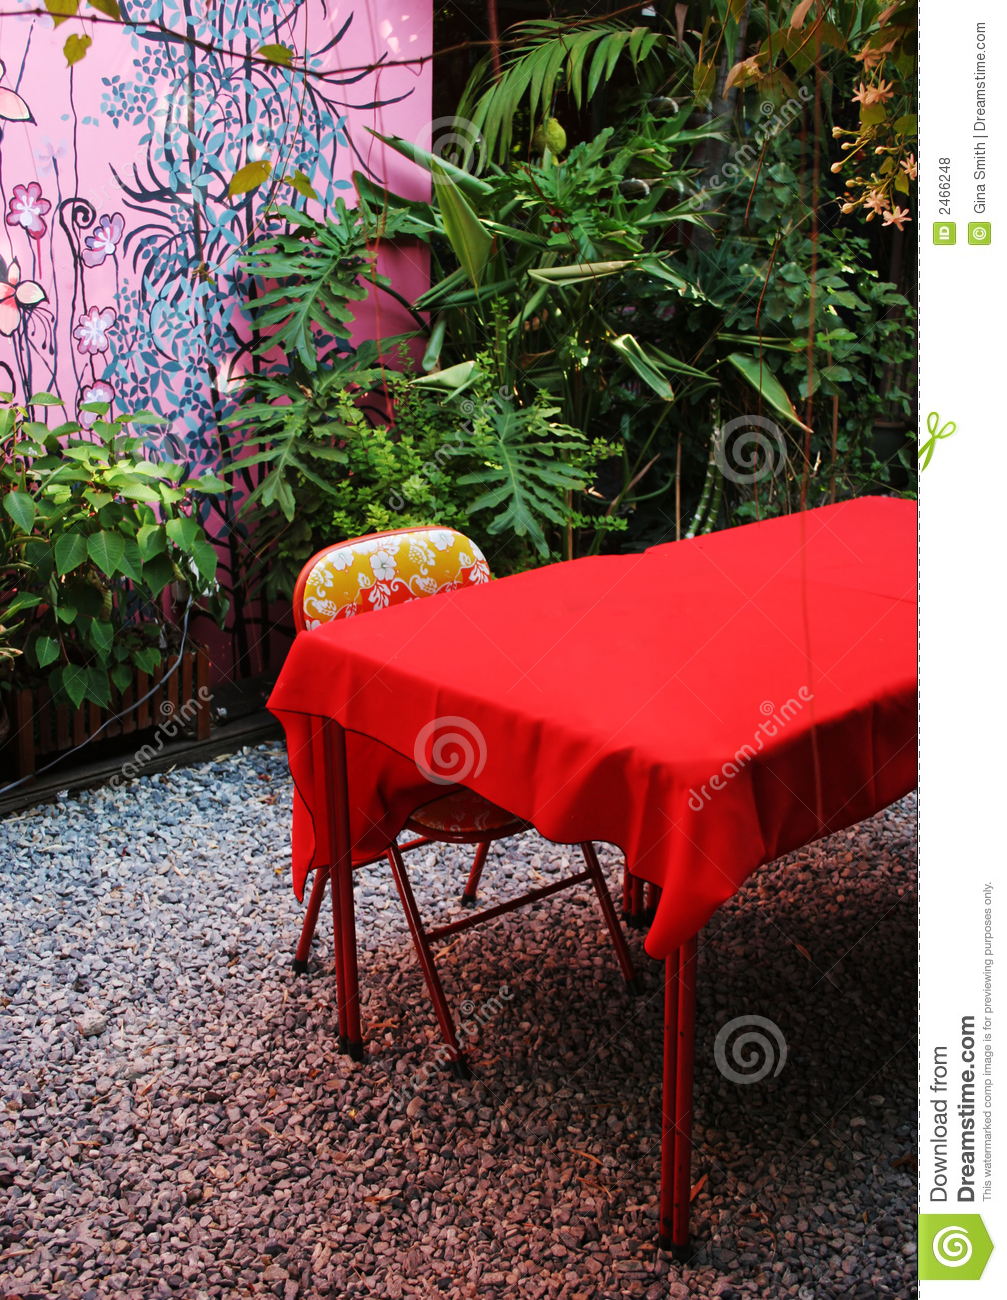 Retro furniture royalty free stock photos image 2466248 for Funky garden furniture designs